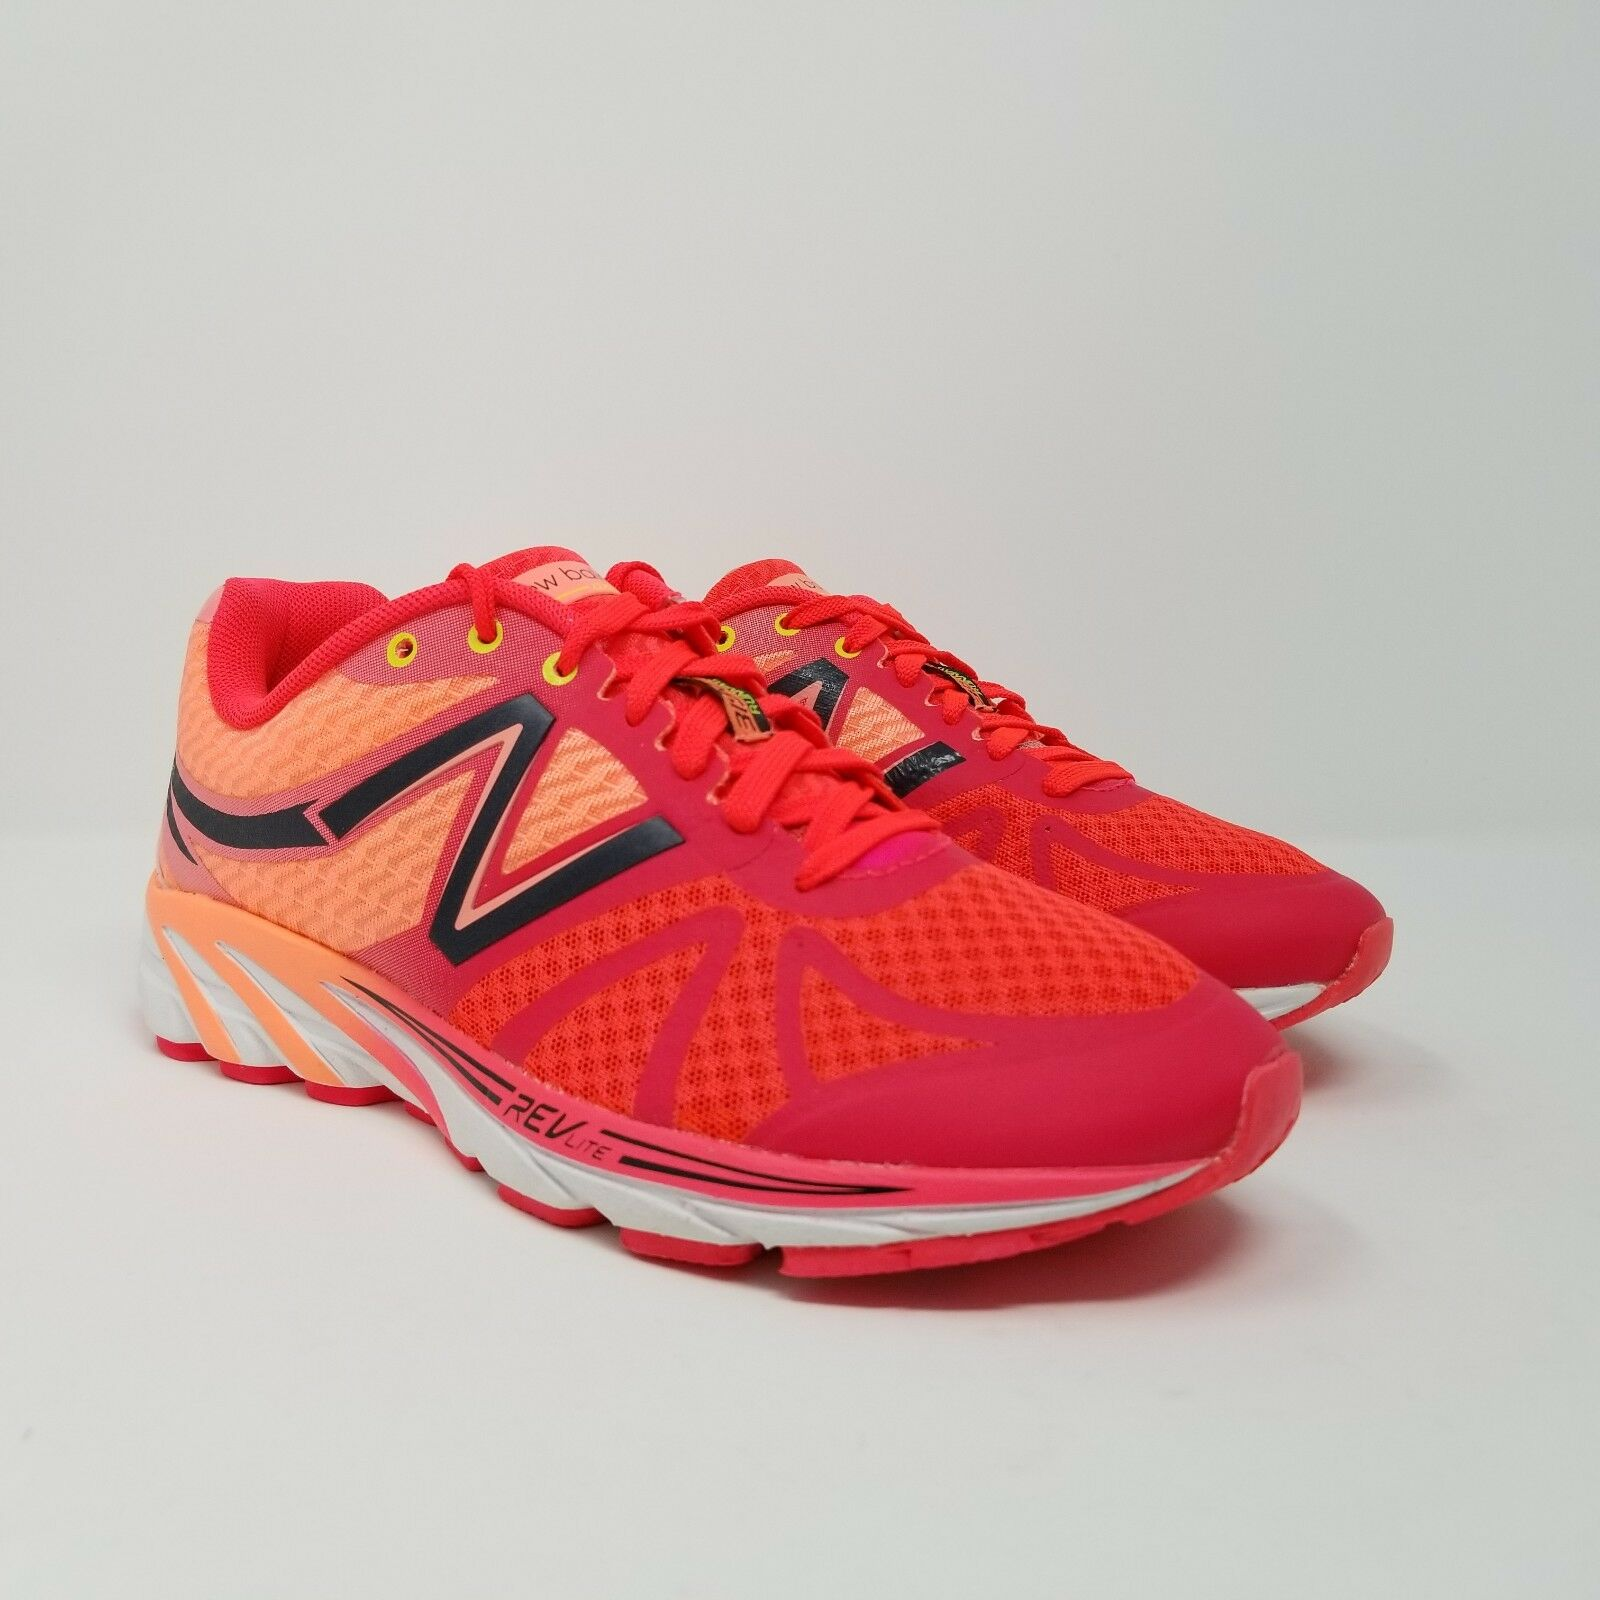 New Balance 3190 v2 Women's Running shoes Pink W3190PK2 3190v2